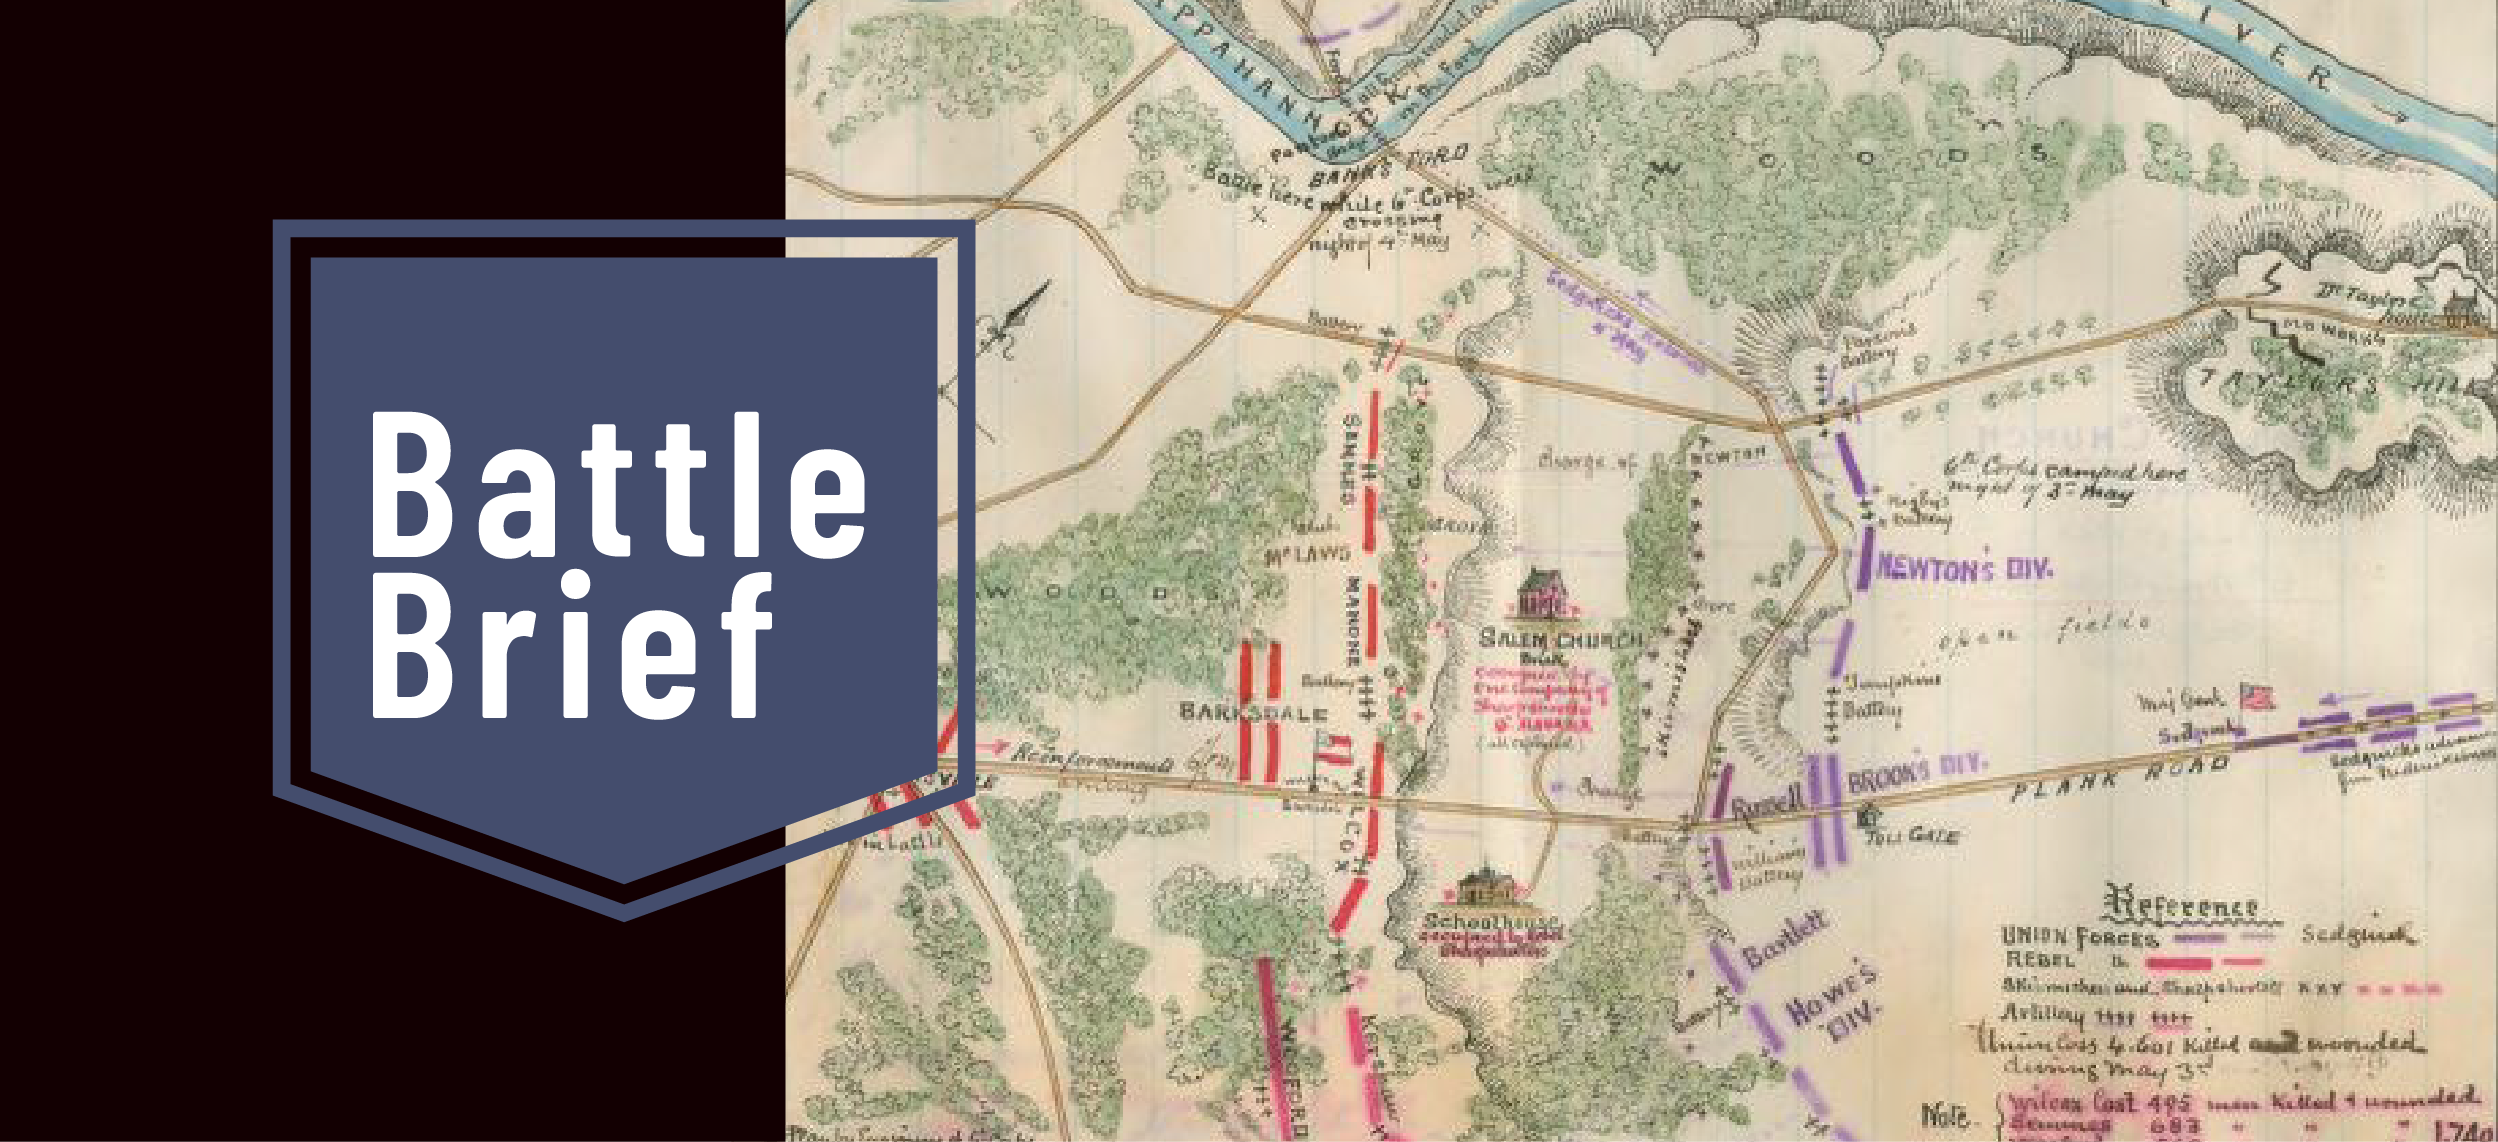 Image of antique battle map of Northern Virginia